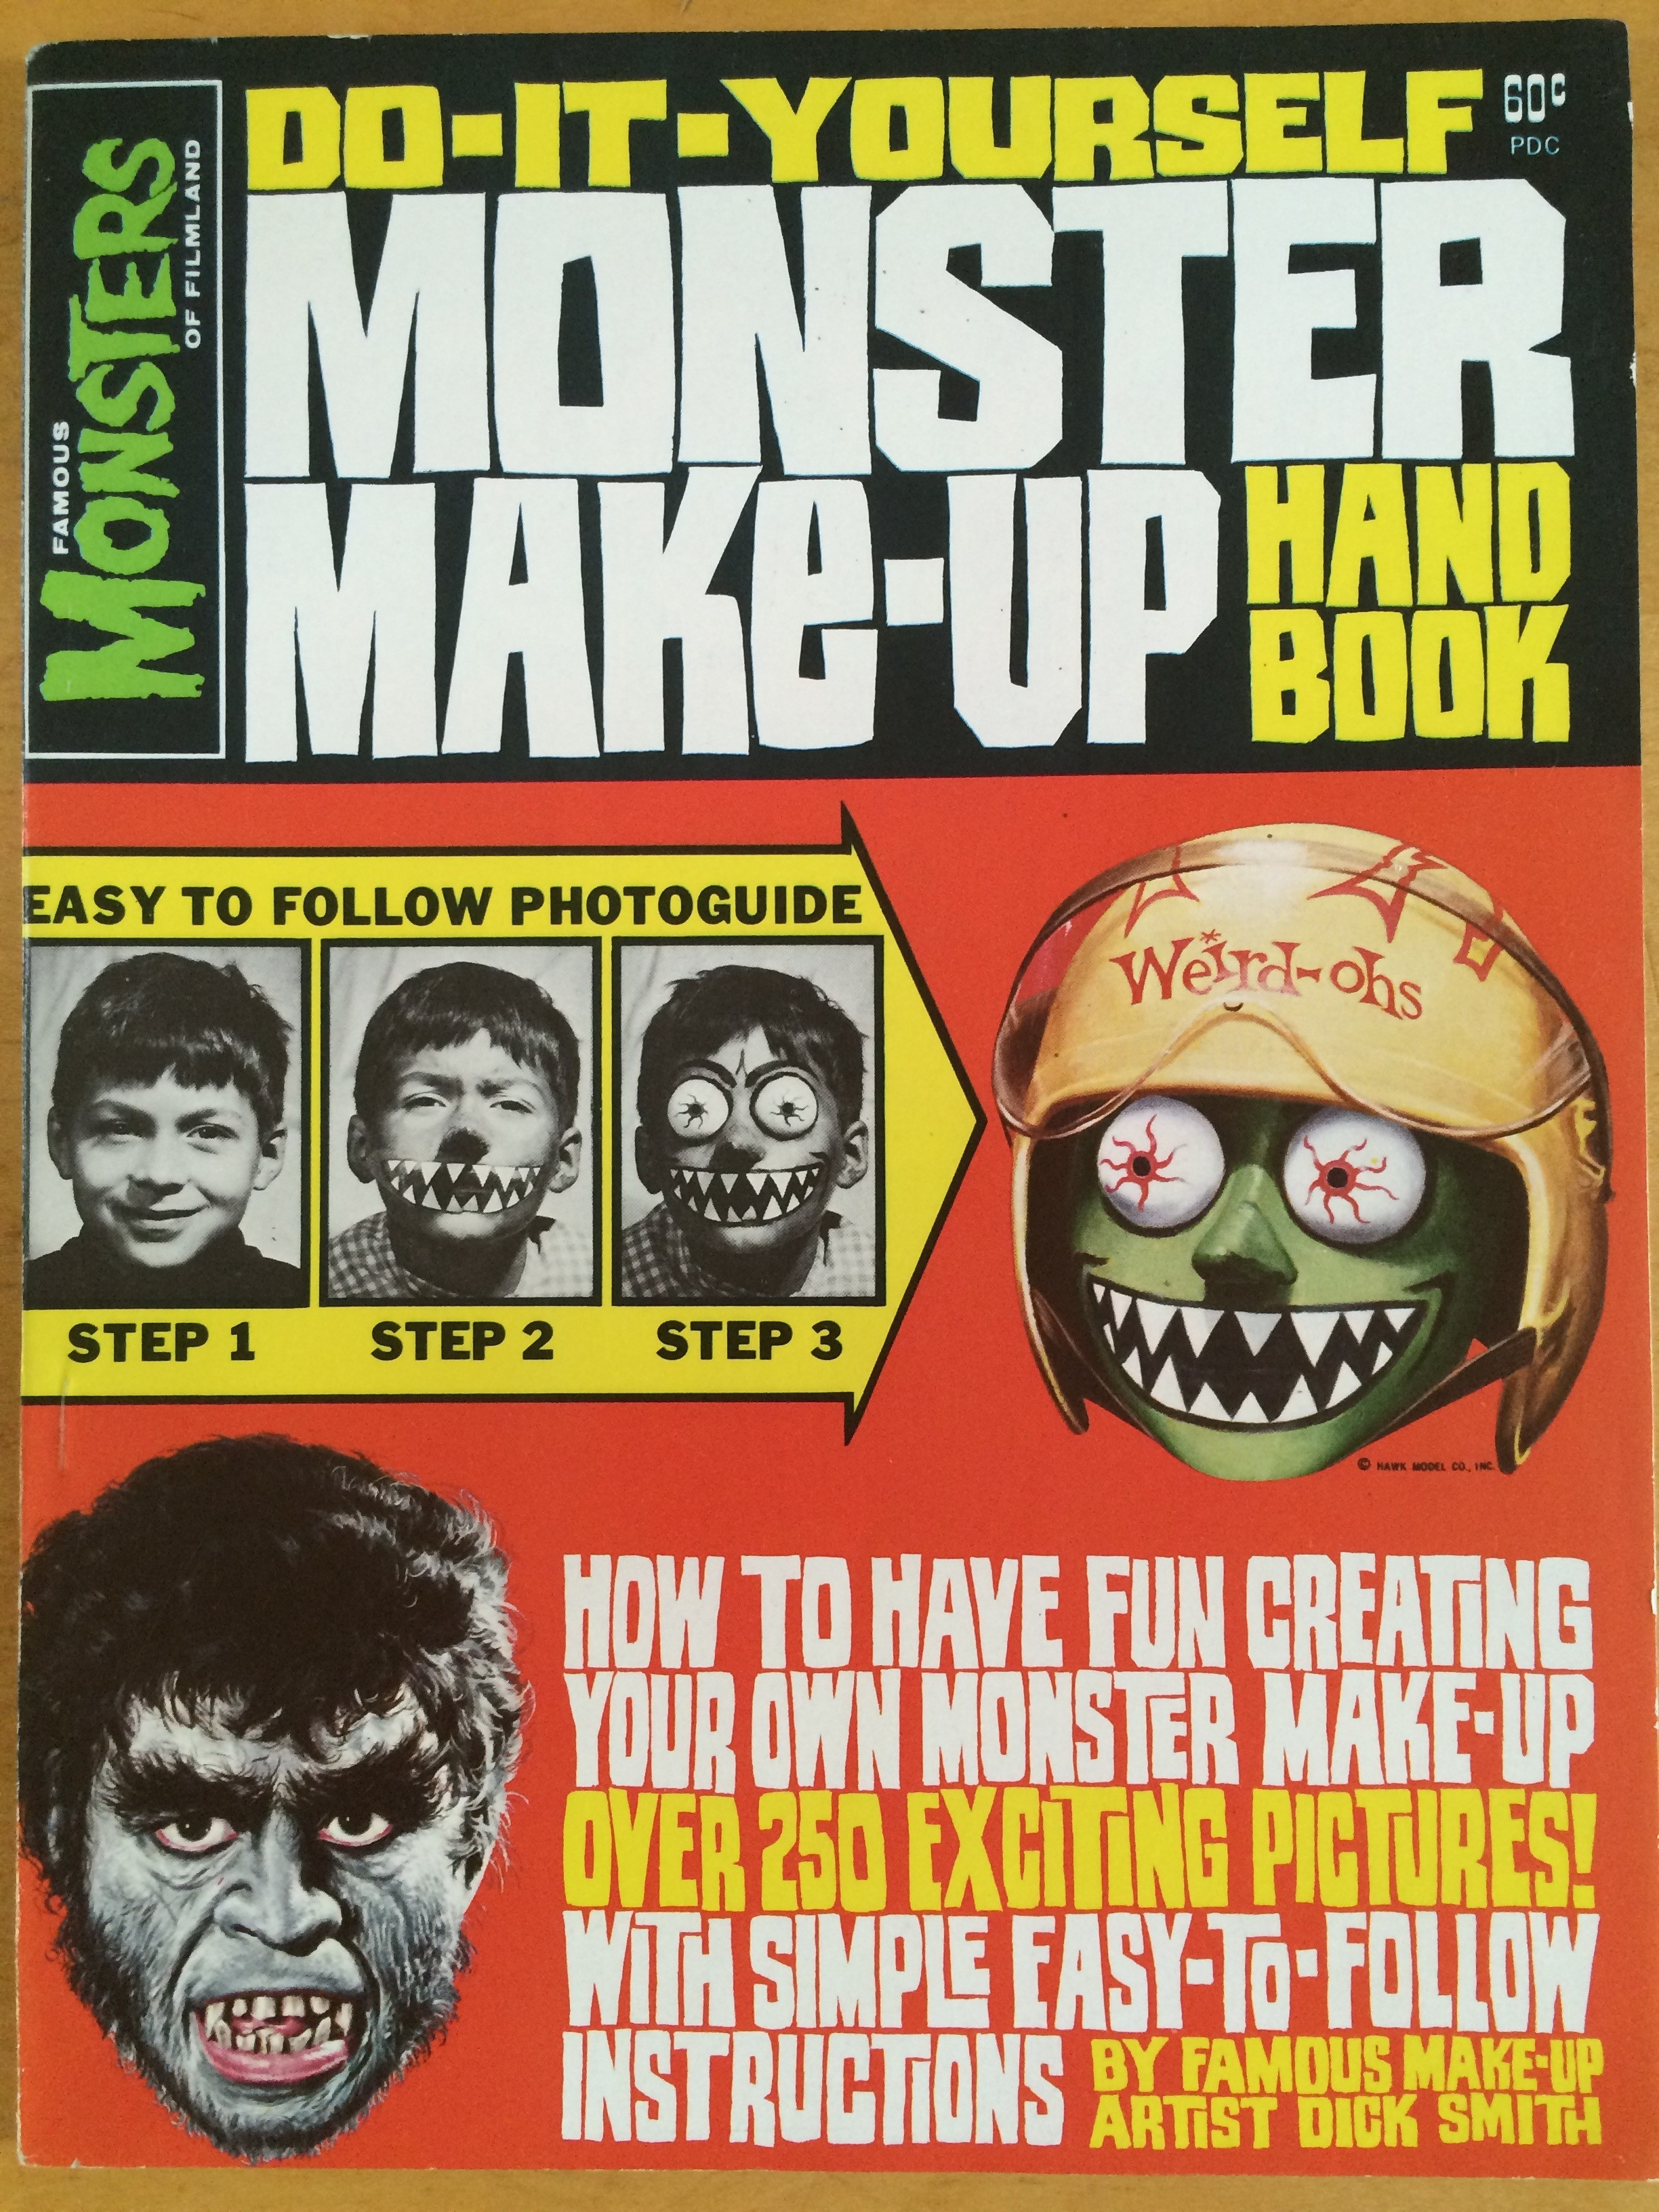 Do-It-Yourself Monster Make-Up Handbook by Dick Smith 1965-45